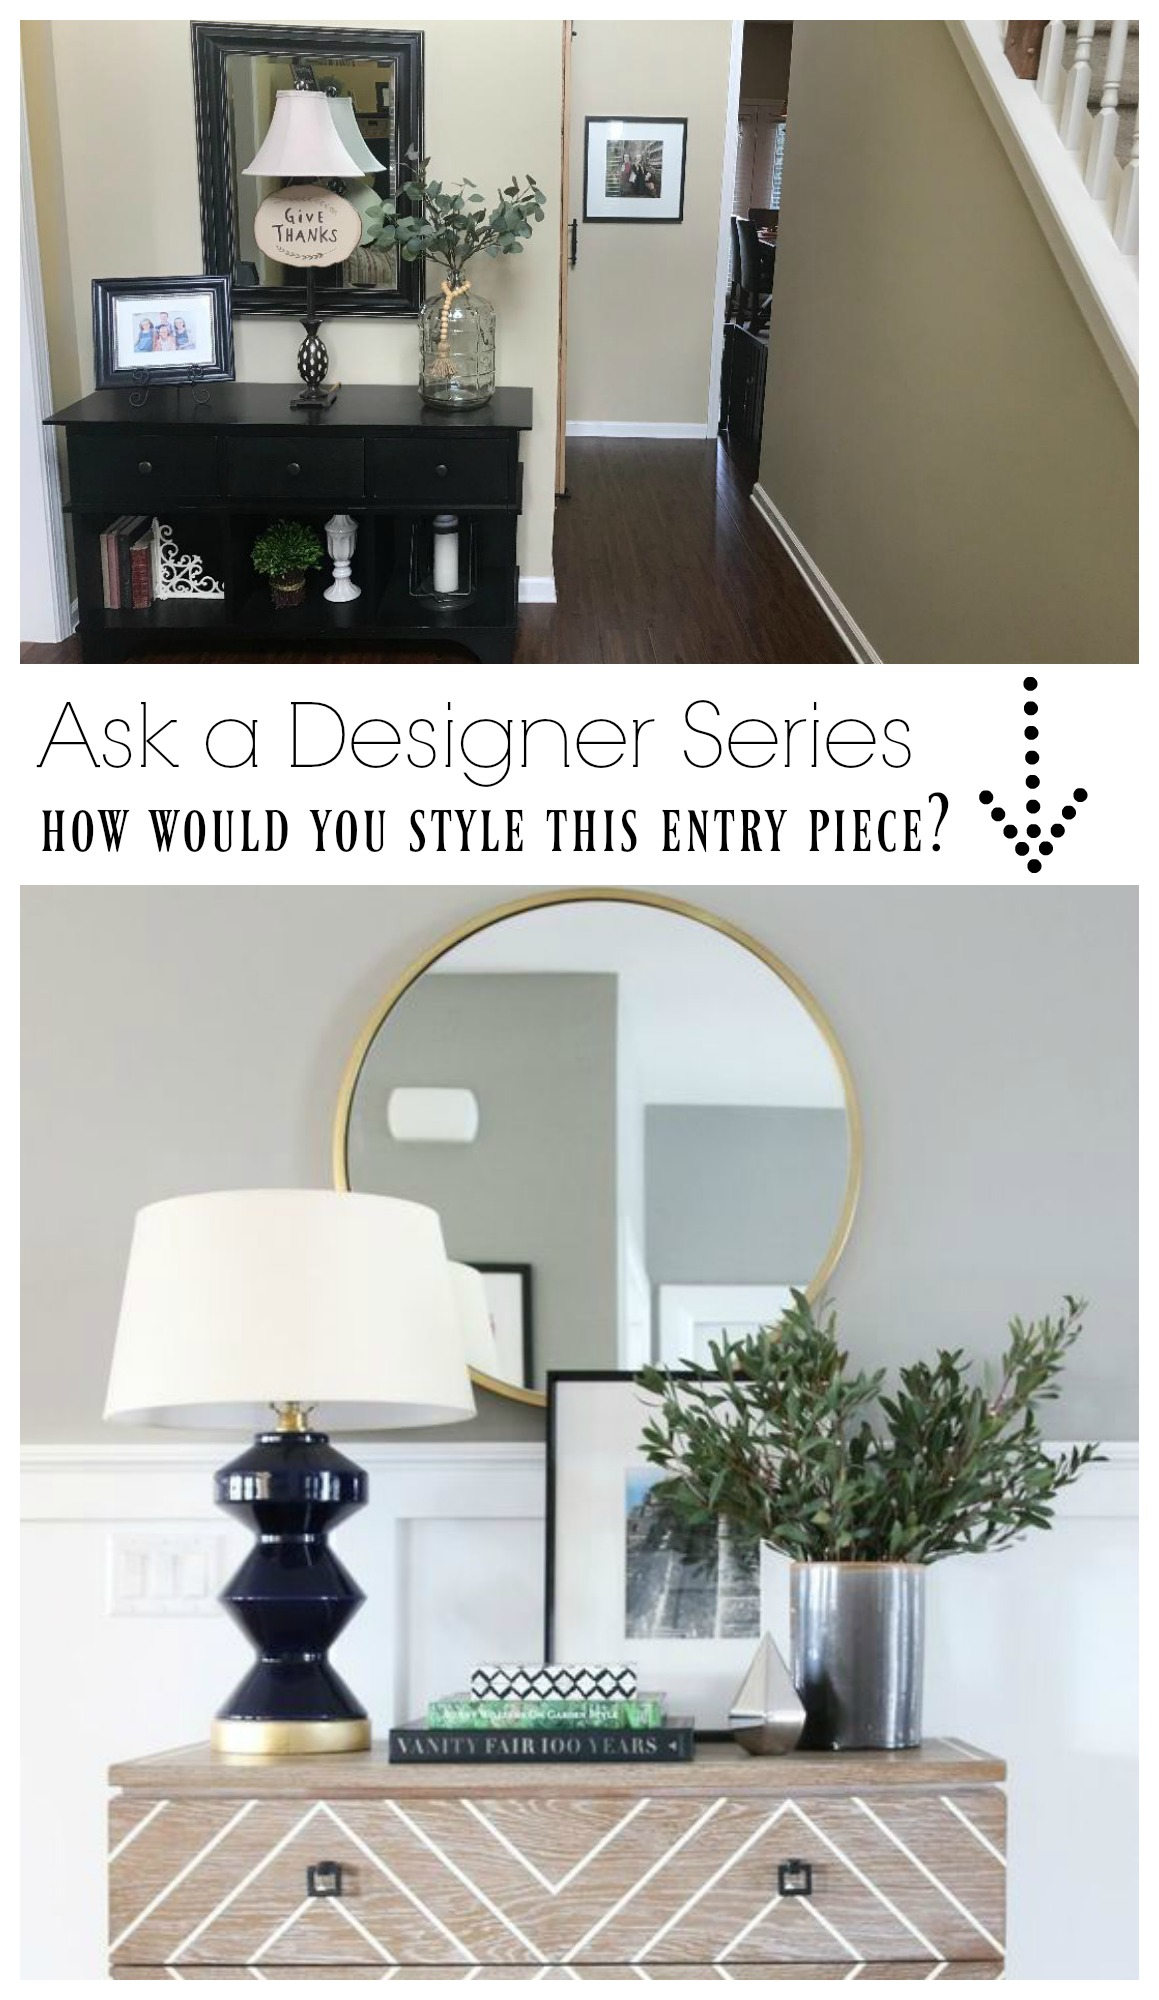 Ask a Designer Series how would you style this Entry Piece?